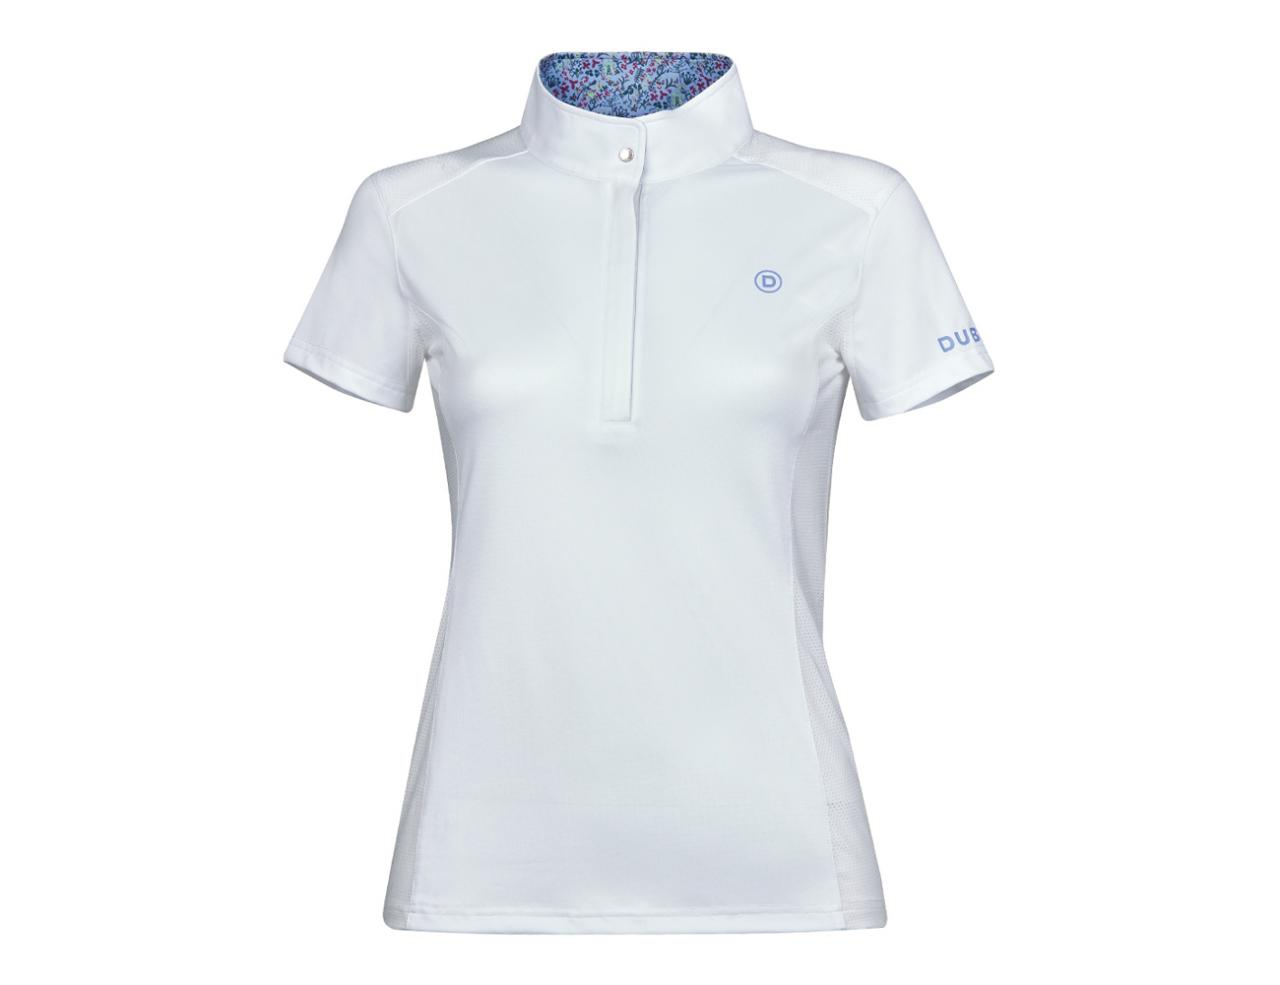 Andy Competition Short Sleeve Shirt